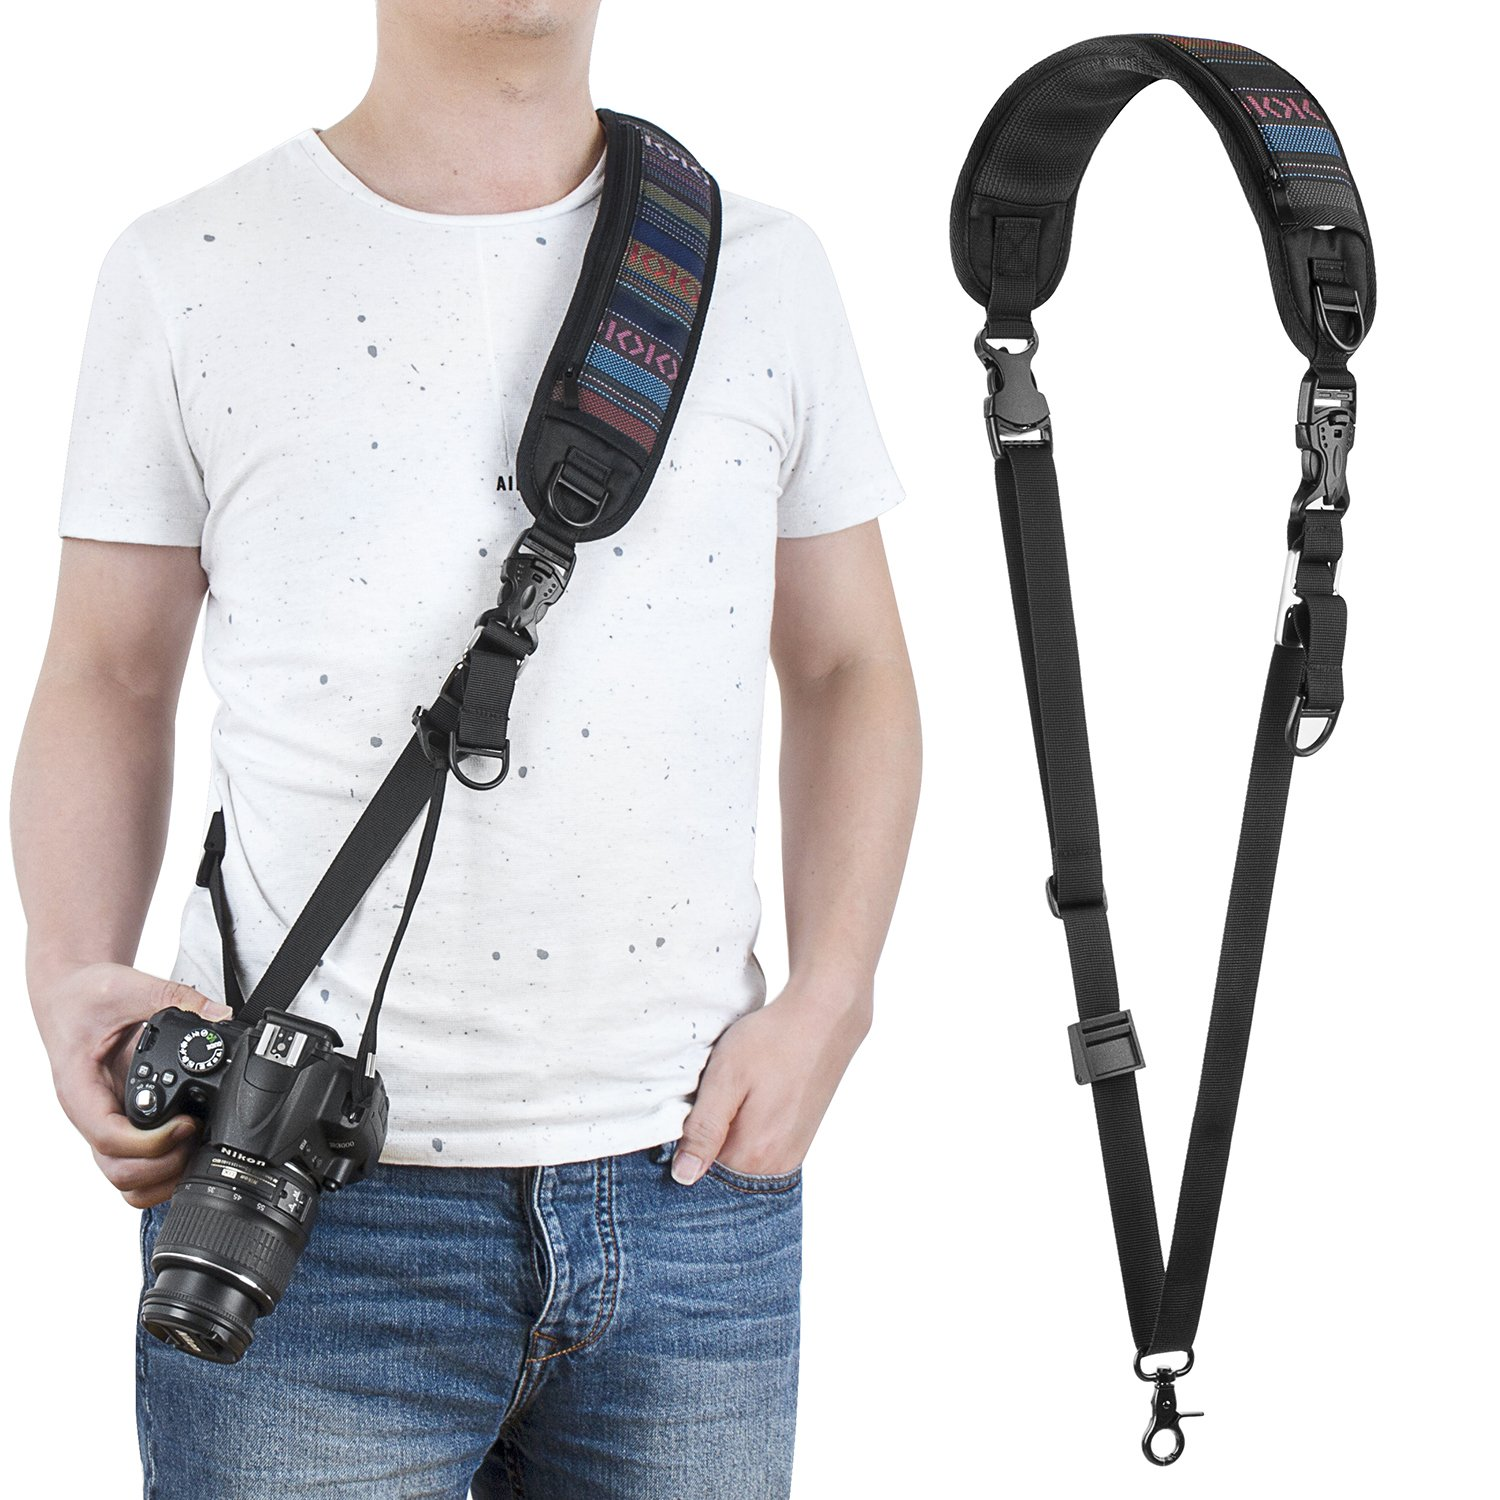 waka Rapid Fire Camera Neck Strap with Quick Release and Safety Tether, Comfortable and Durable Shoulder Sling Camera Strap, Black by waka